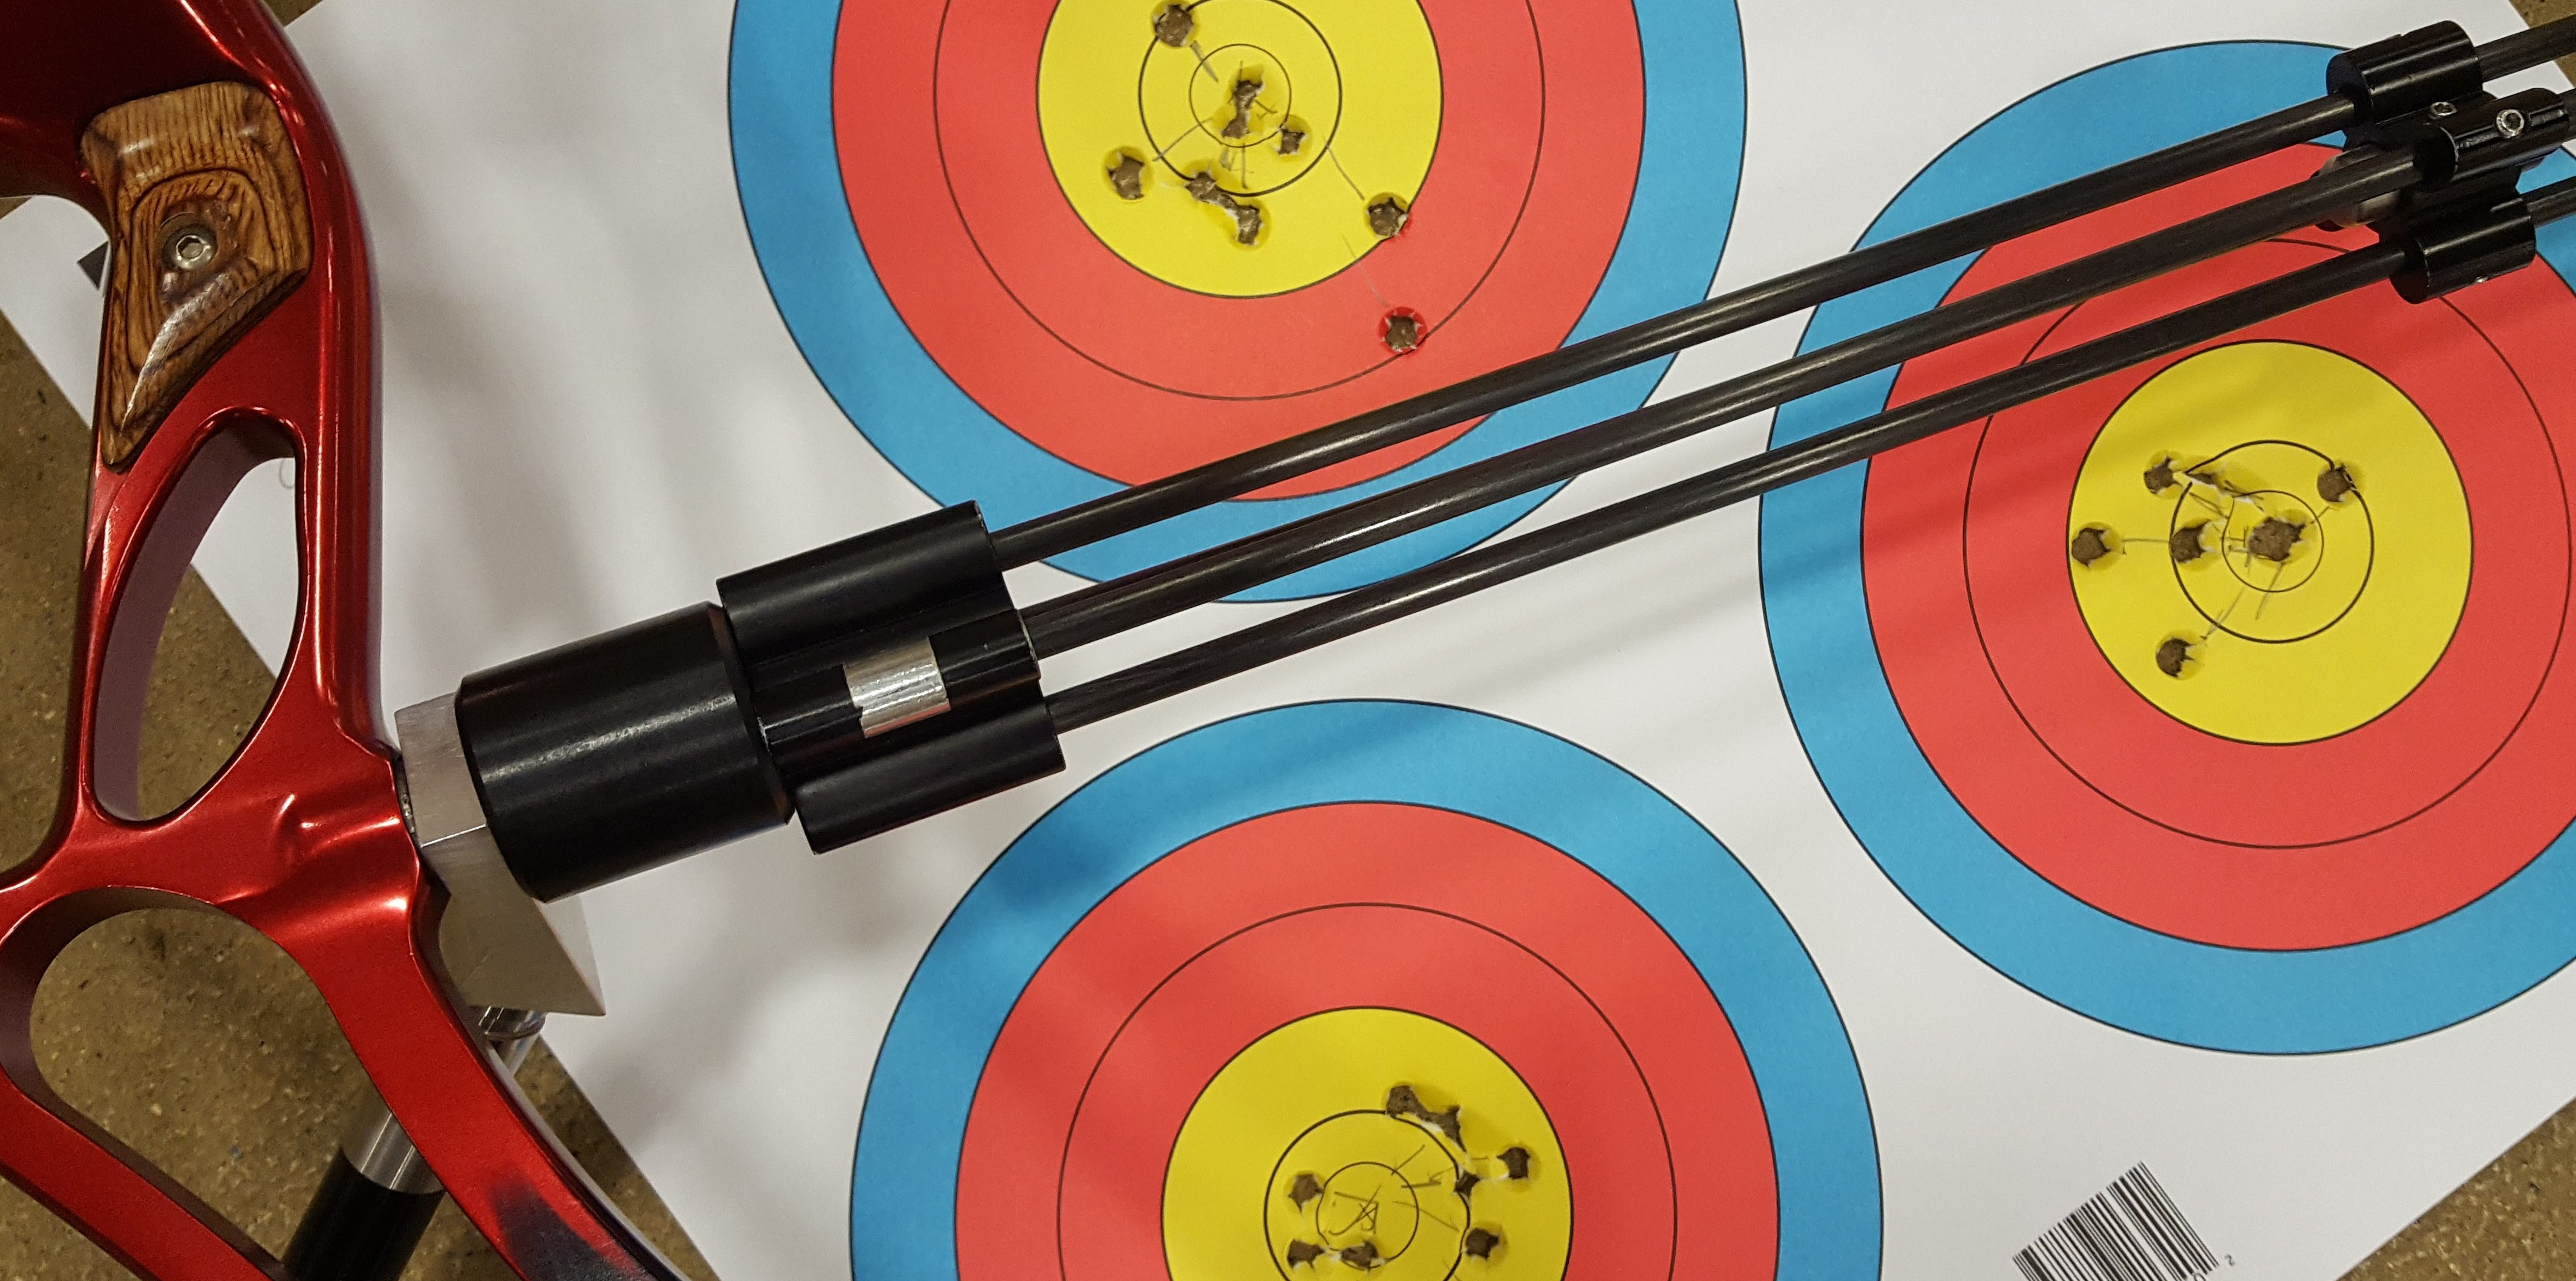 Archery target and bow